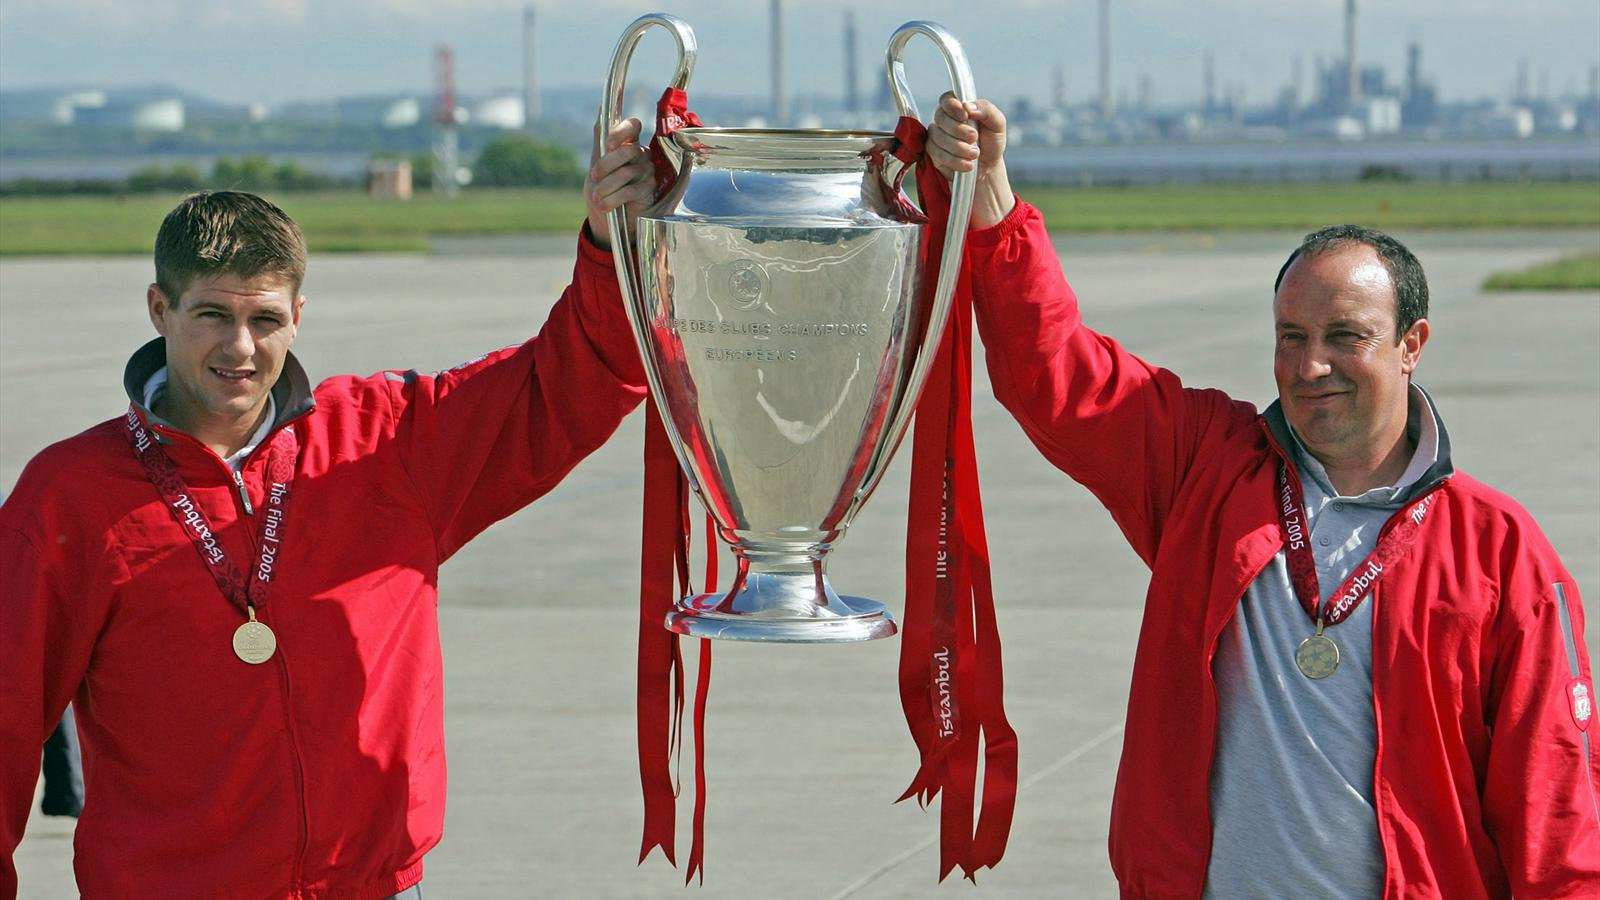 Steven Gerrard and Rafael Benitez return from Istanbul with the Champions League trophy, 2005